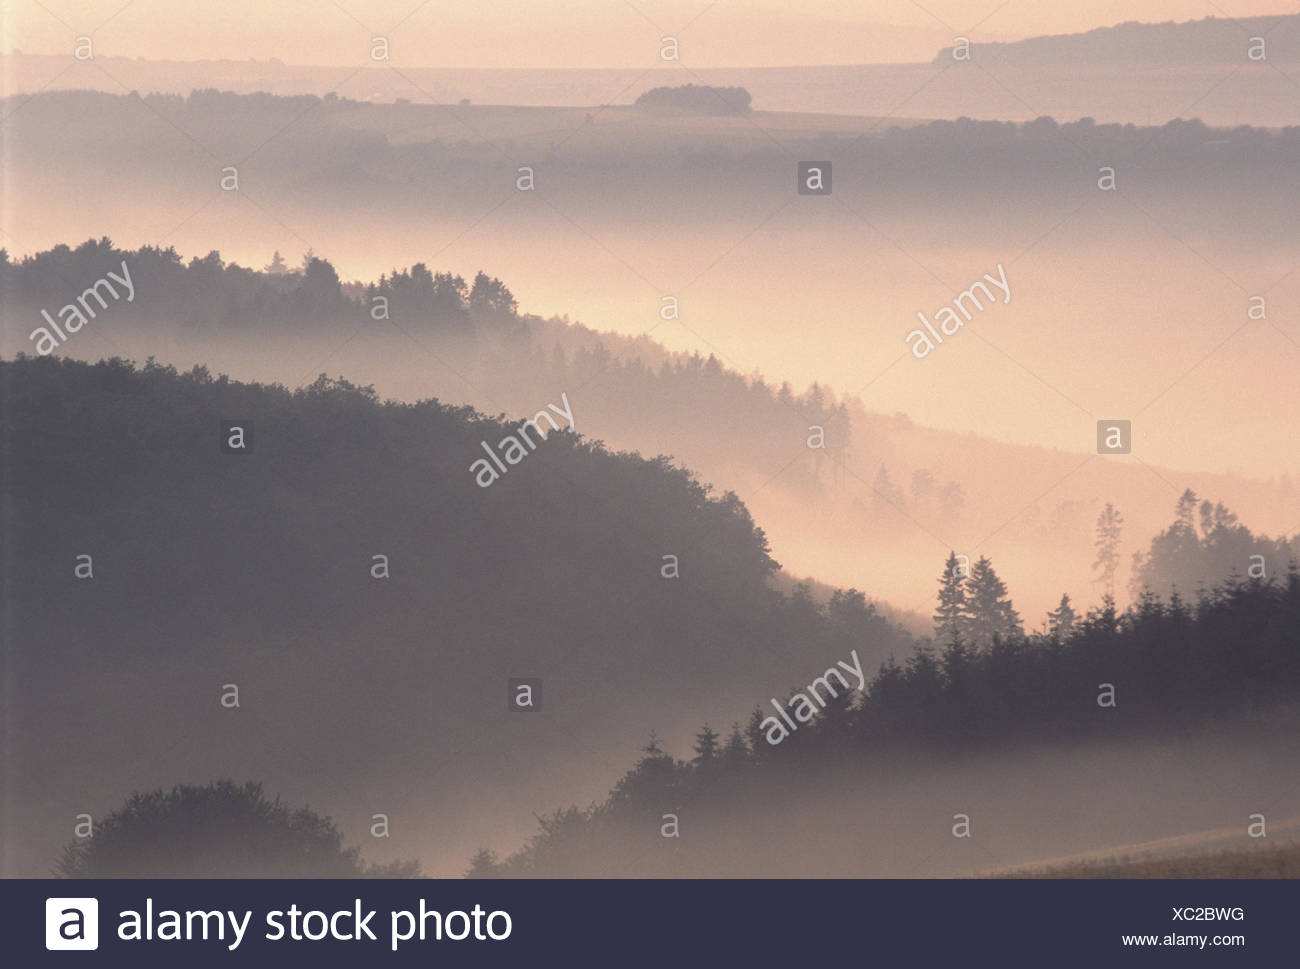 Germany, Rhineland-Palatinate, Hunsrück, hill scenery, fog, morning mood, Europe, scenery, hill, woods, nature, morning fog, morning light, fog patches, rest, silence, loneliness, mysticism, mysteriously - Stock Image